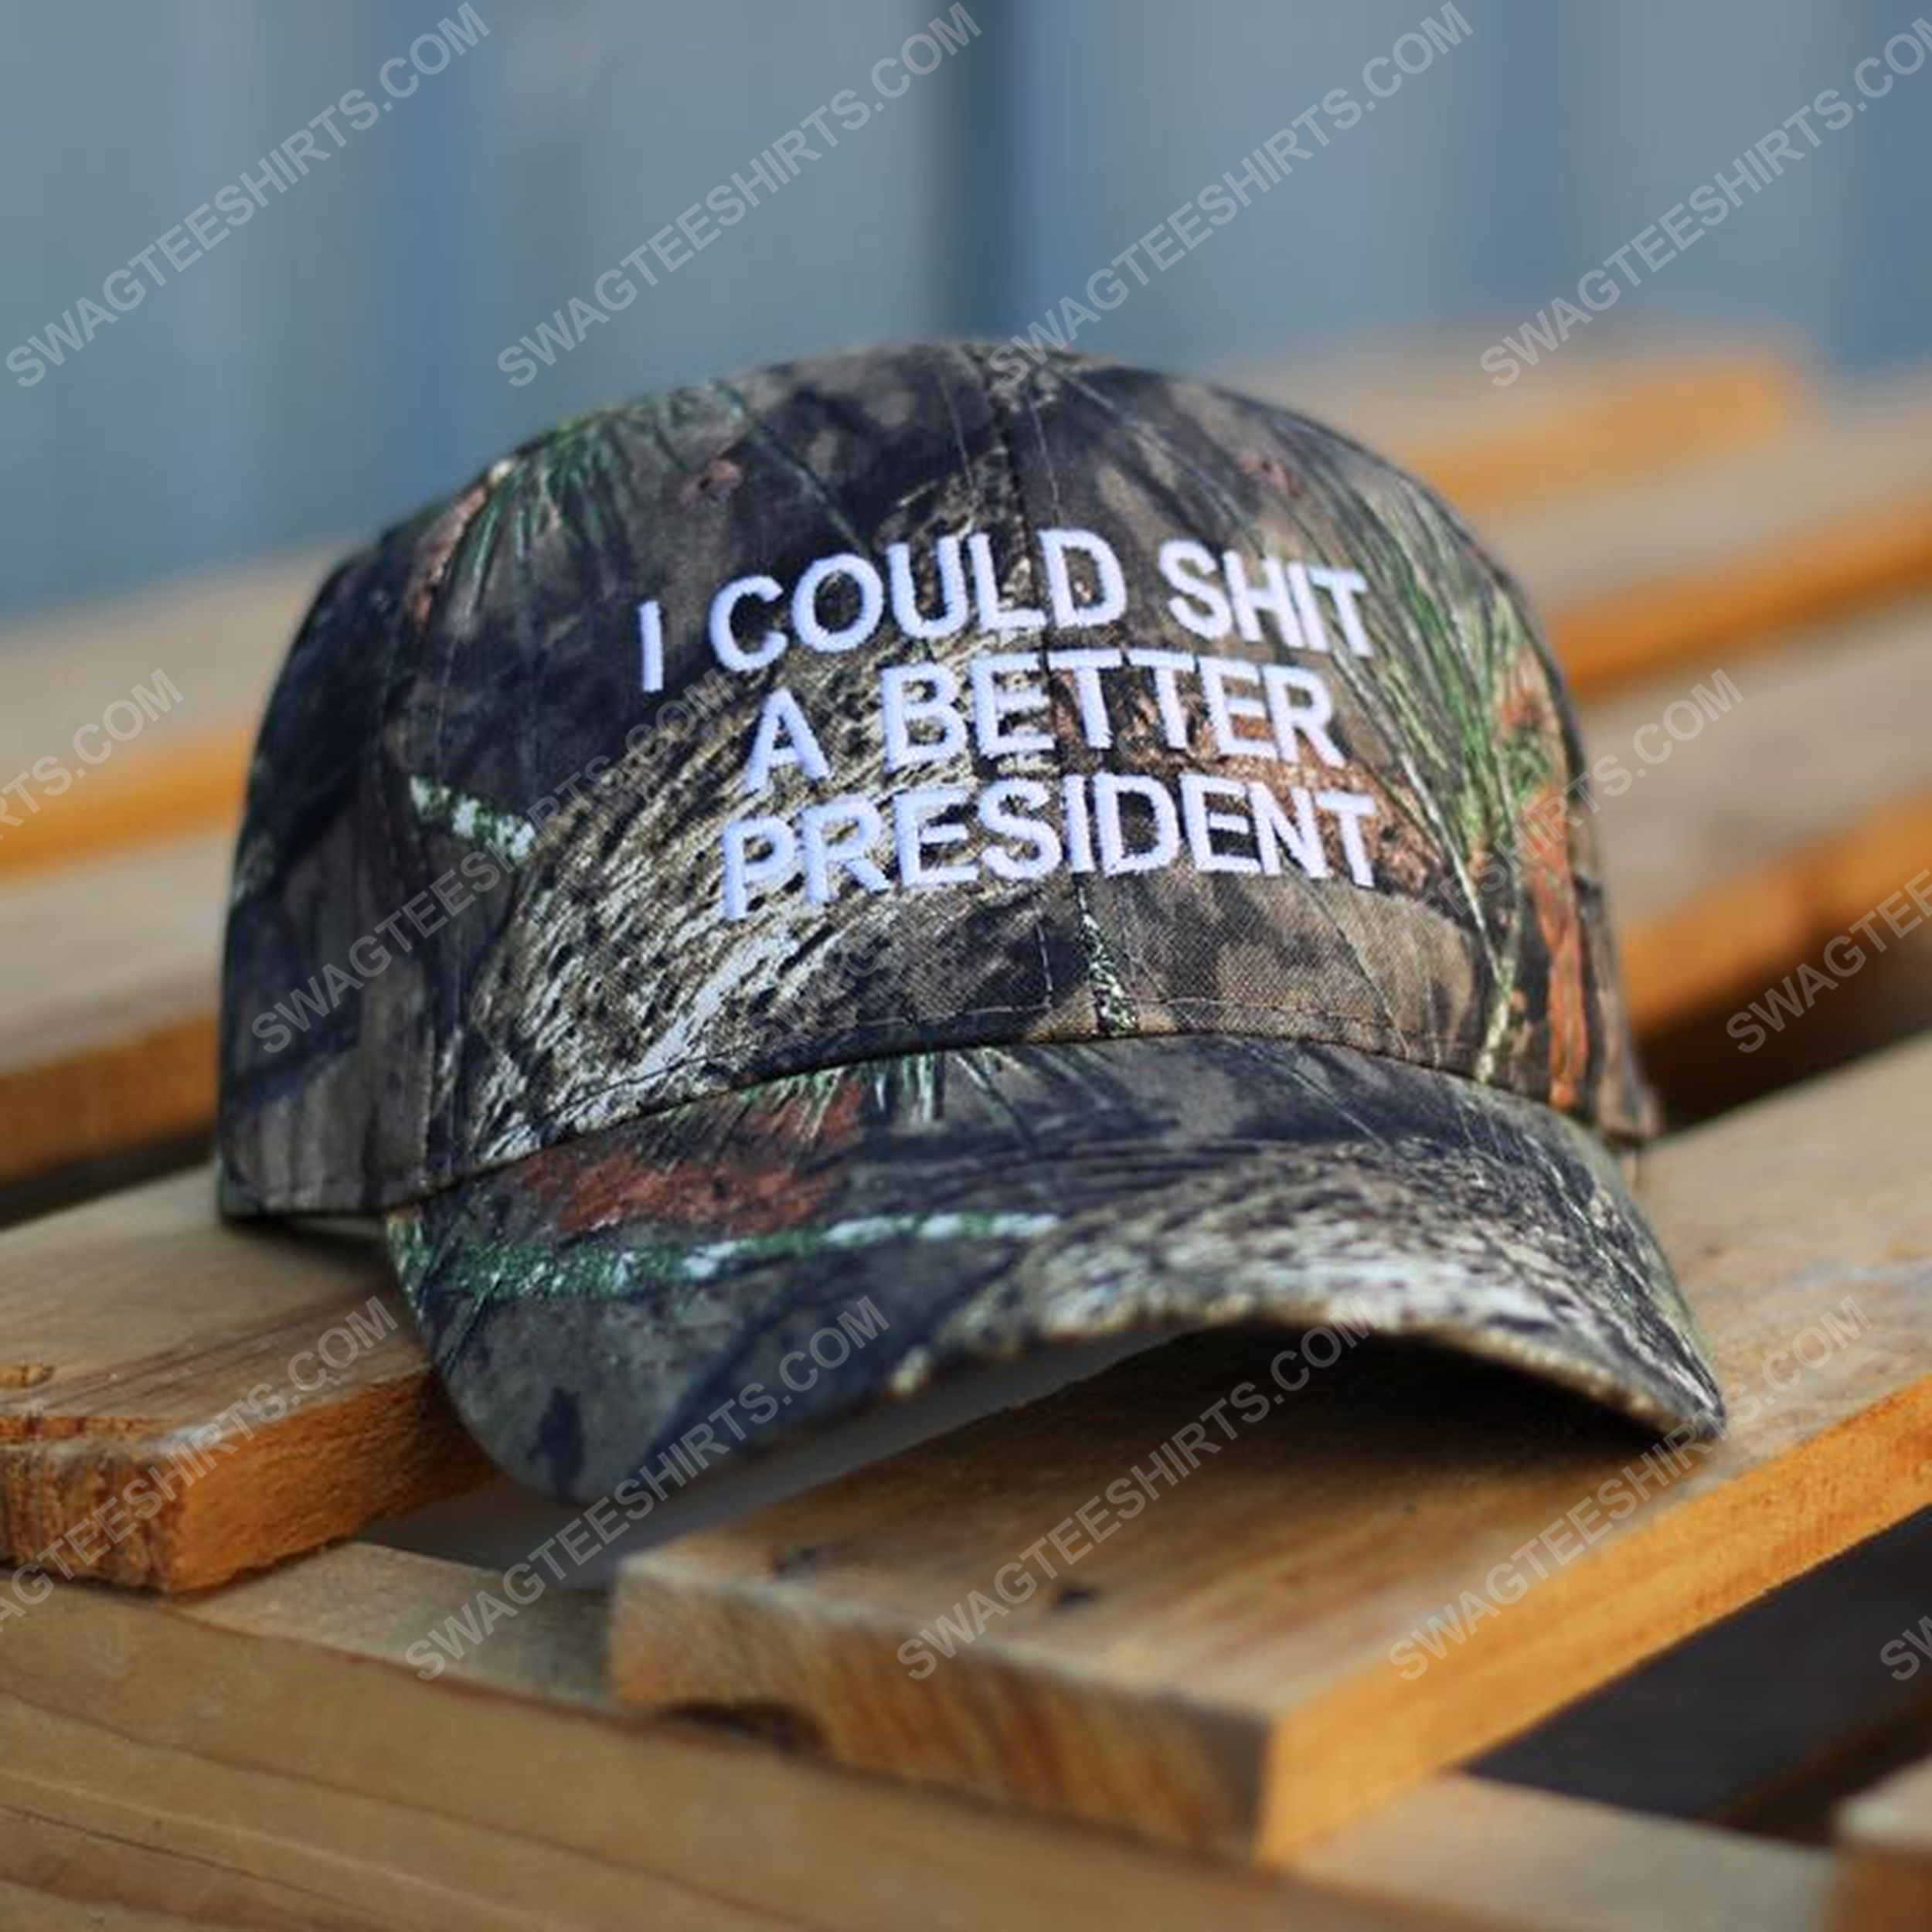 Camo i could shit a better president full print classic hat 1 - Copy